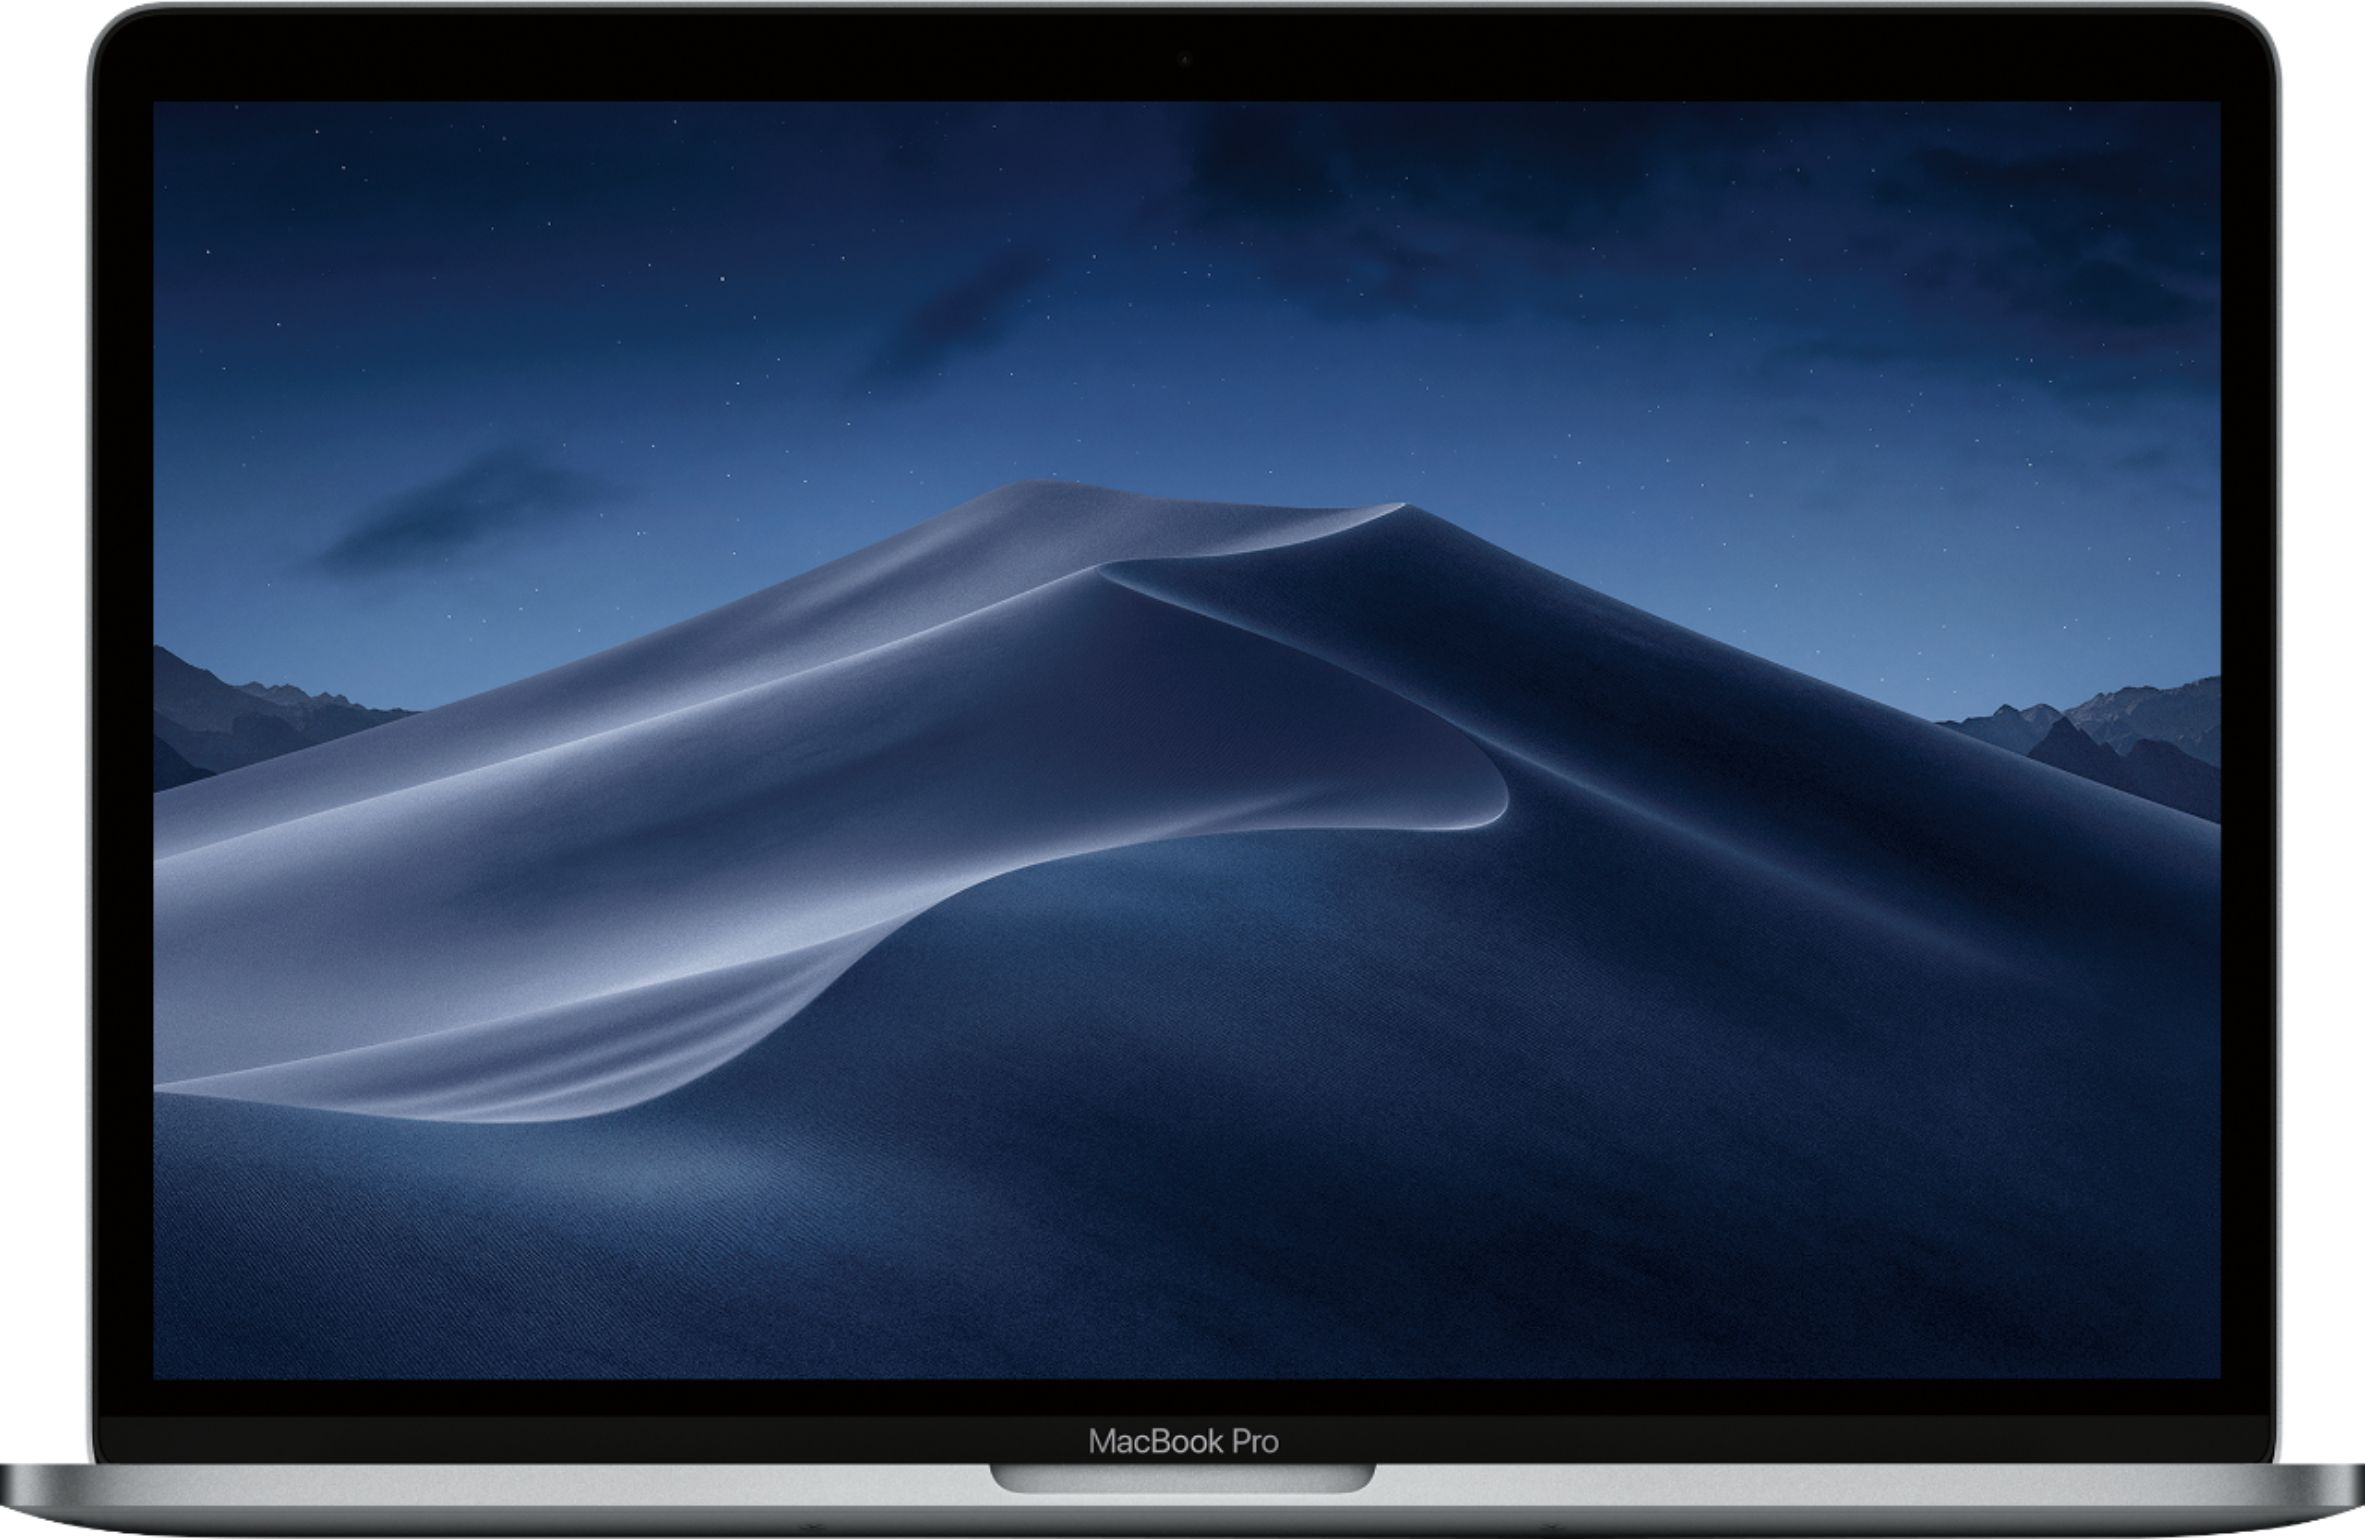 "Front Zoom. Apple - MacBook Pro 15.4"" Display with Touch Bar - Intel Core i9 - 32GB Memory - AMD Radeon Pro Vega 20 - 1TB SSD - Space Gray."